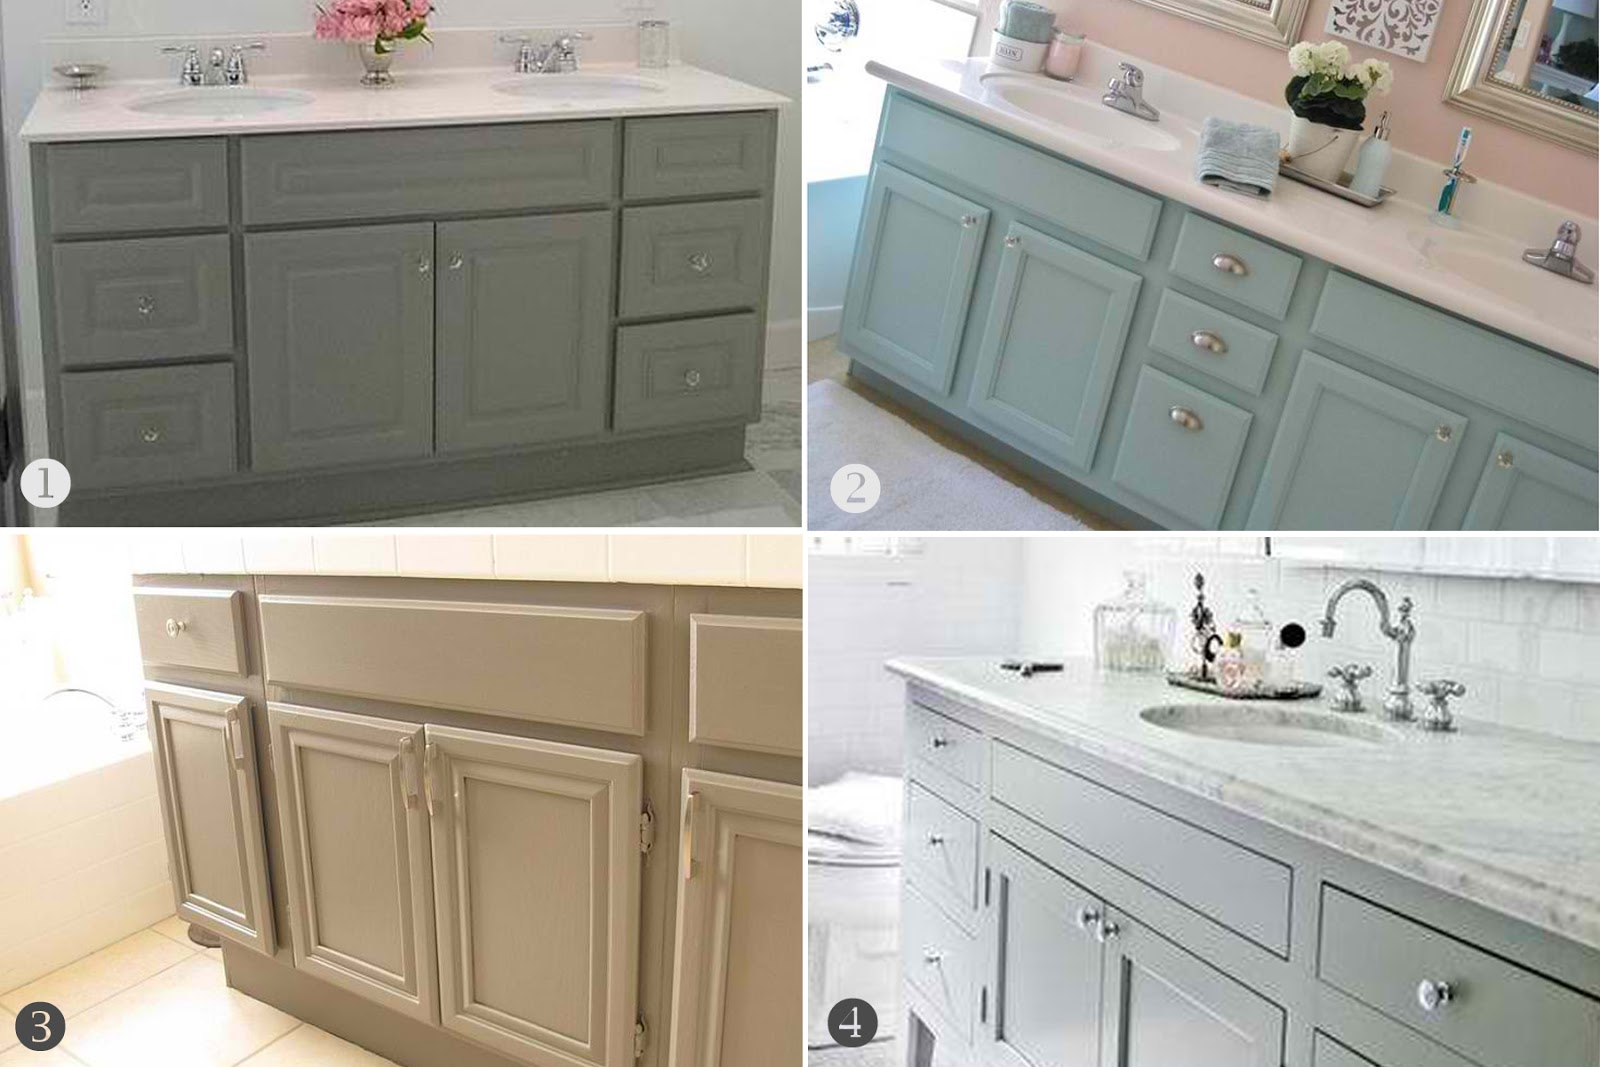 Inspired honey bee home bathroom cabinets upgrade Paint bathroom cabinets